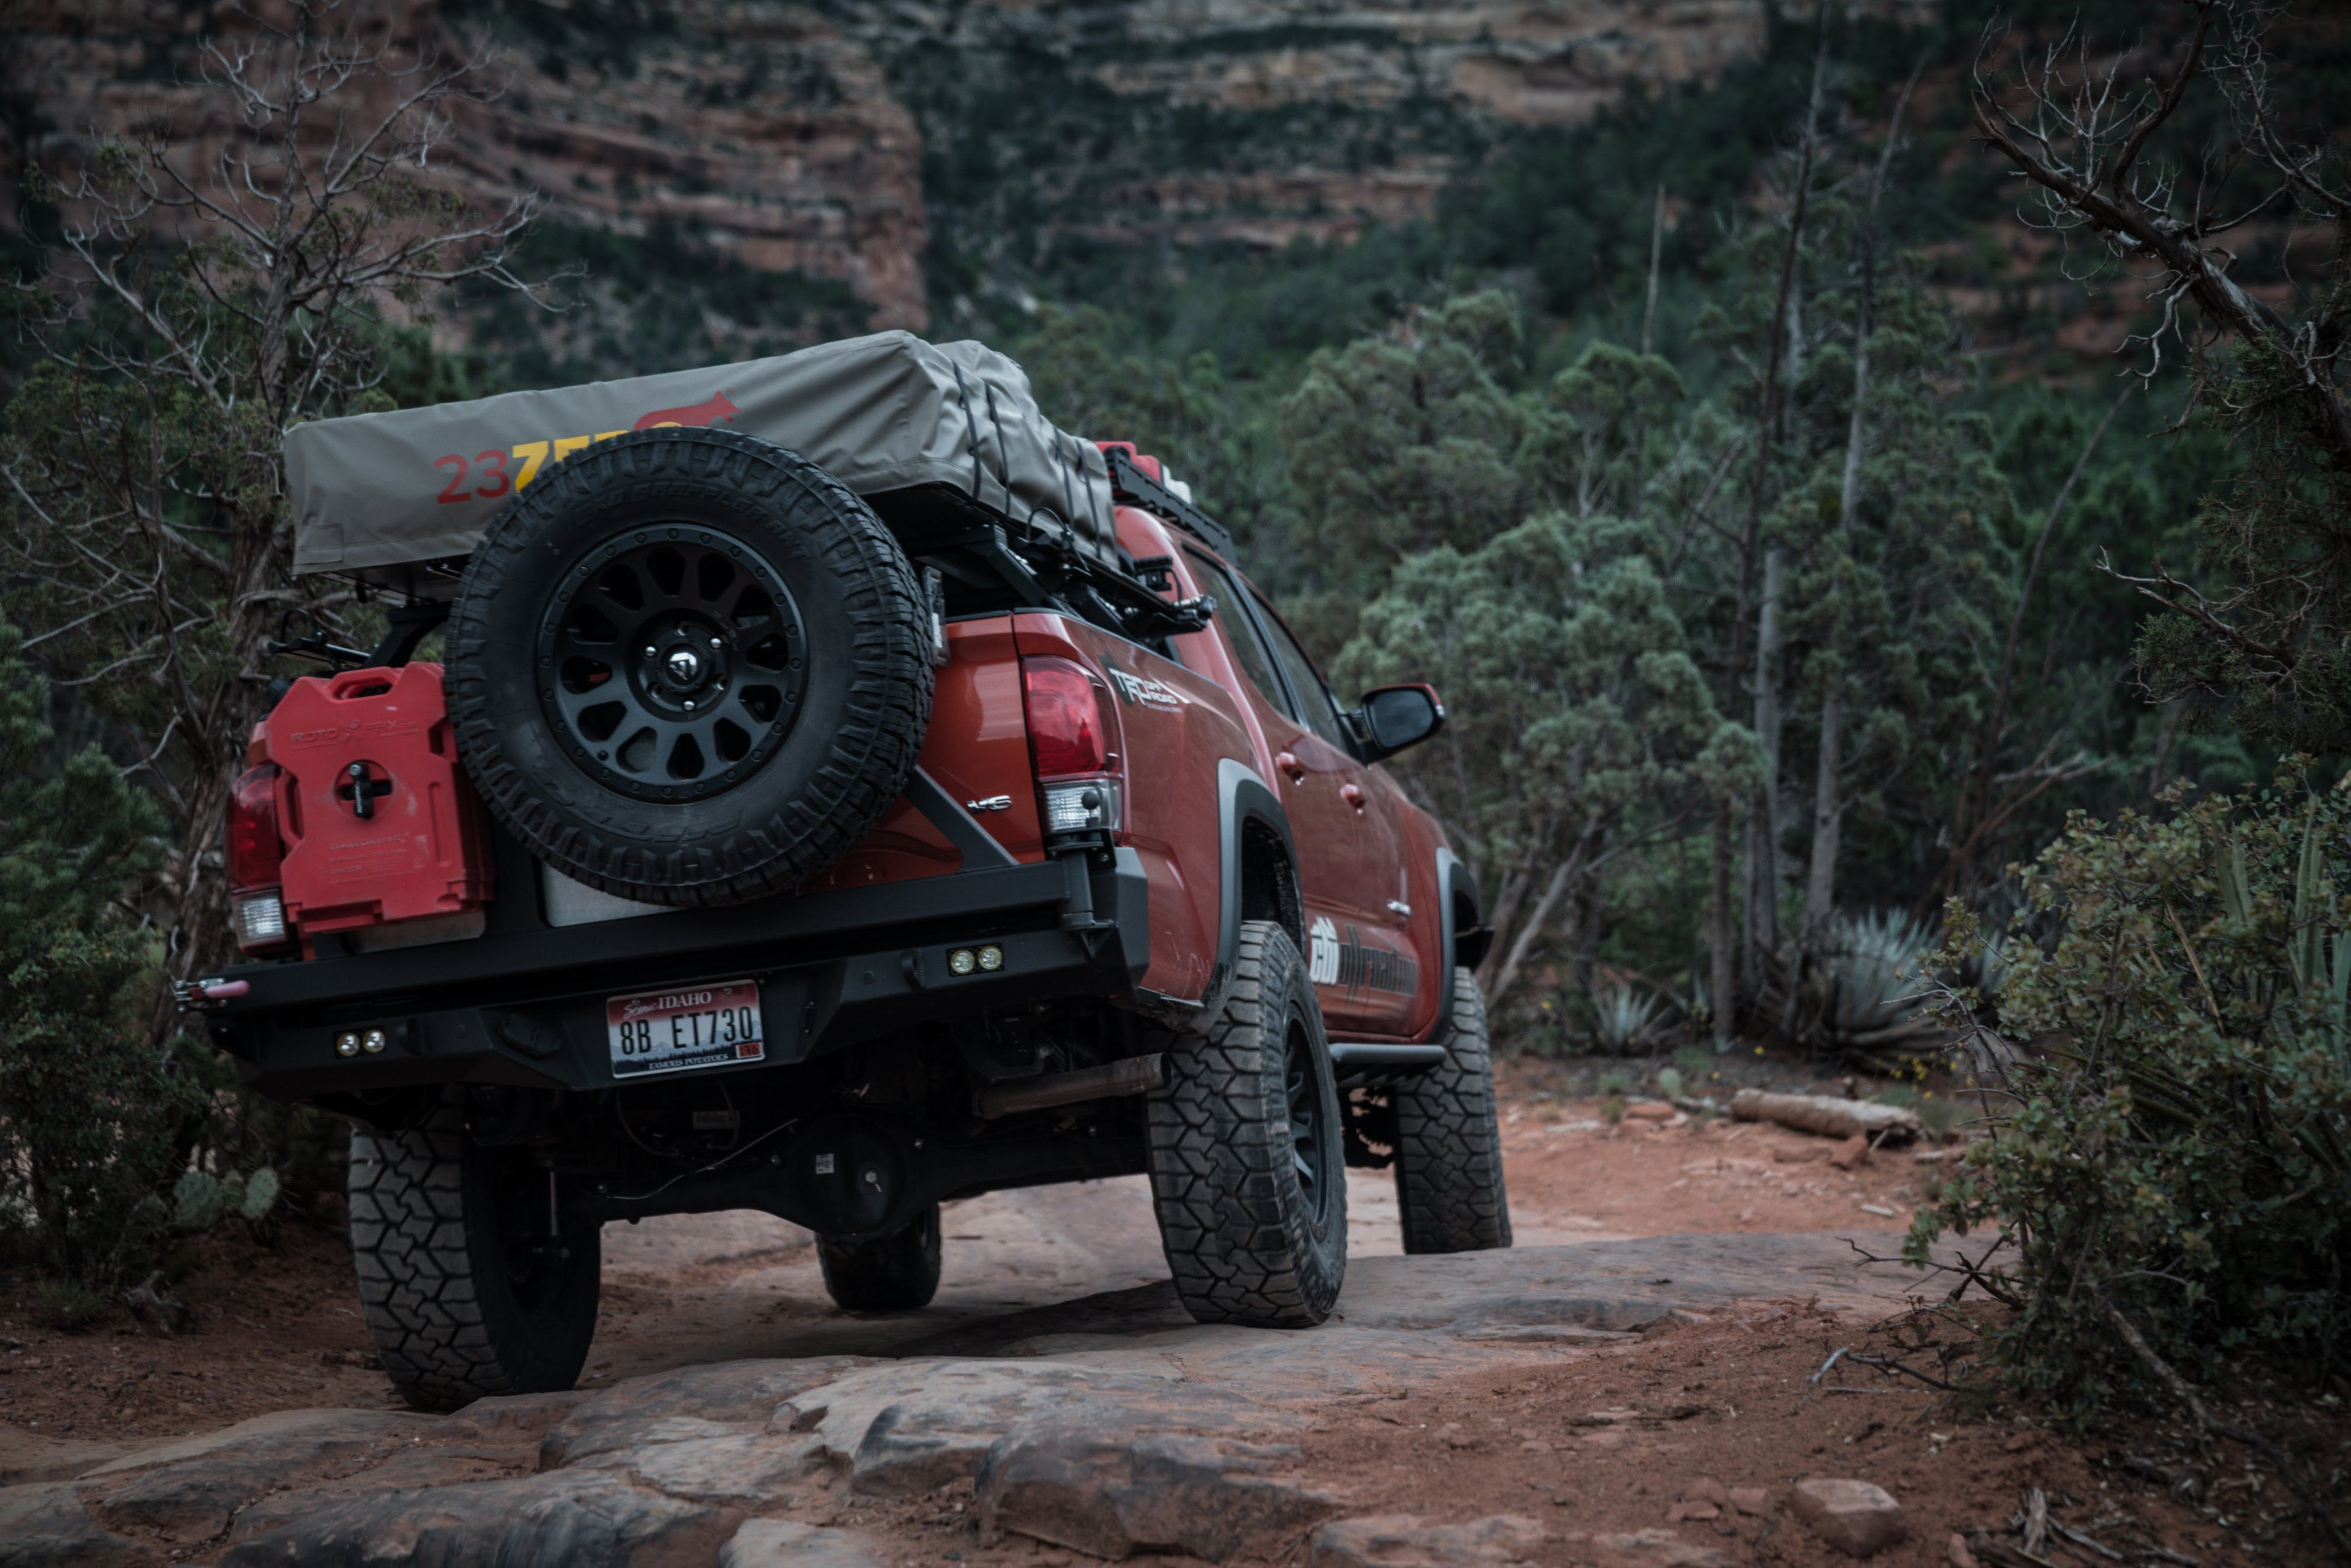 Outfit your rig for offroading and overlanding expeditions